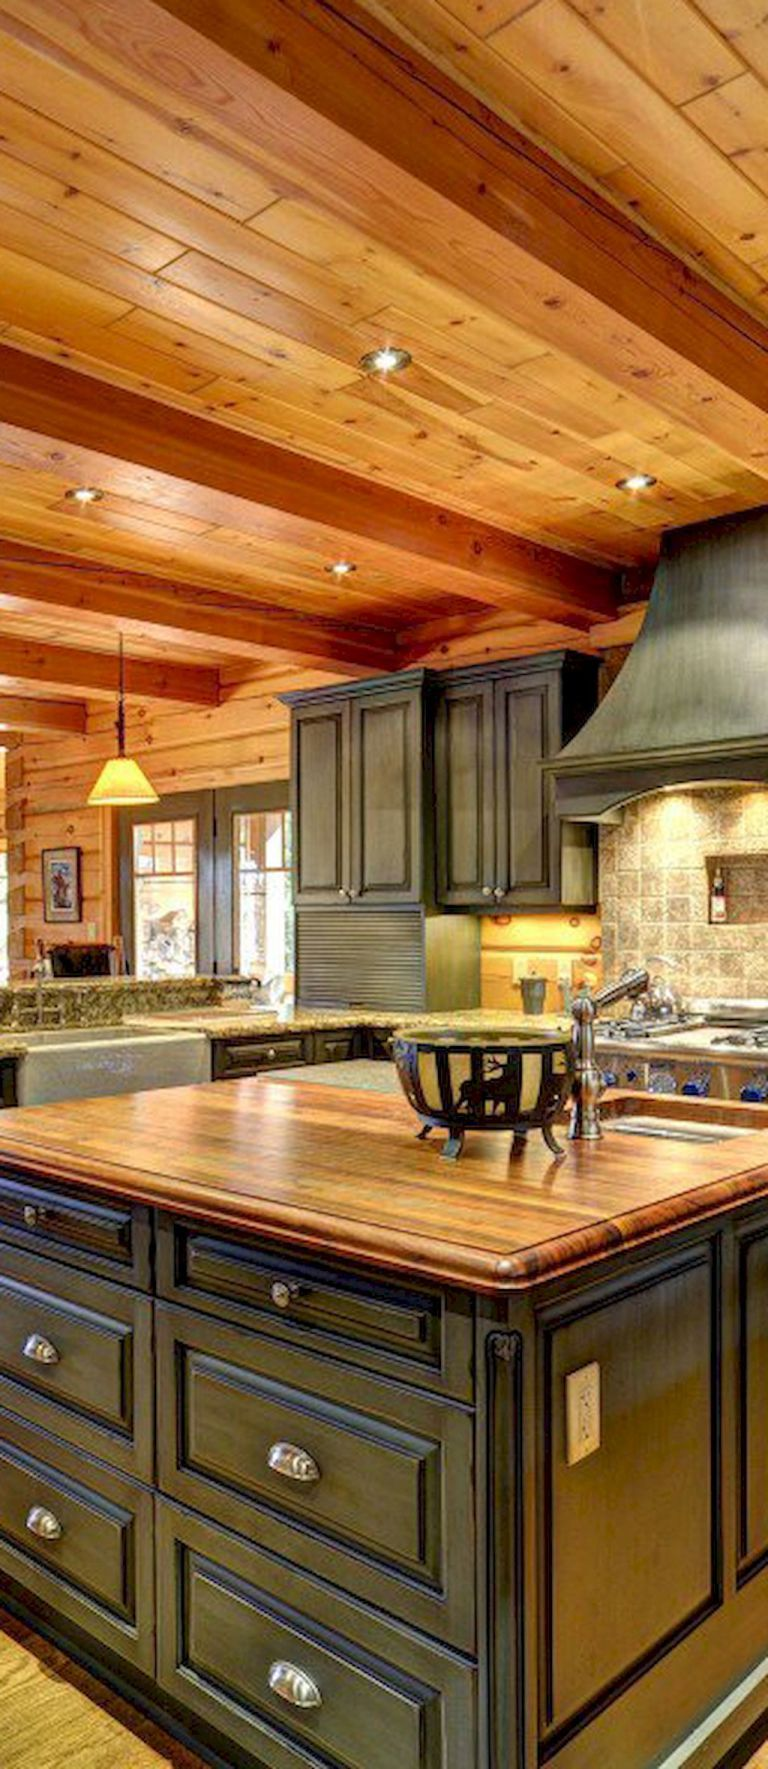 80 Rustic Kitchen Cabinet Makeover Ideas Http Homedecors Info 80 Rustic Kitchen Cabinet Makeover Log Home Kitchens Log Cabin Kitchens Rustic Kitchen Cabinets